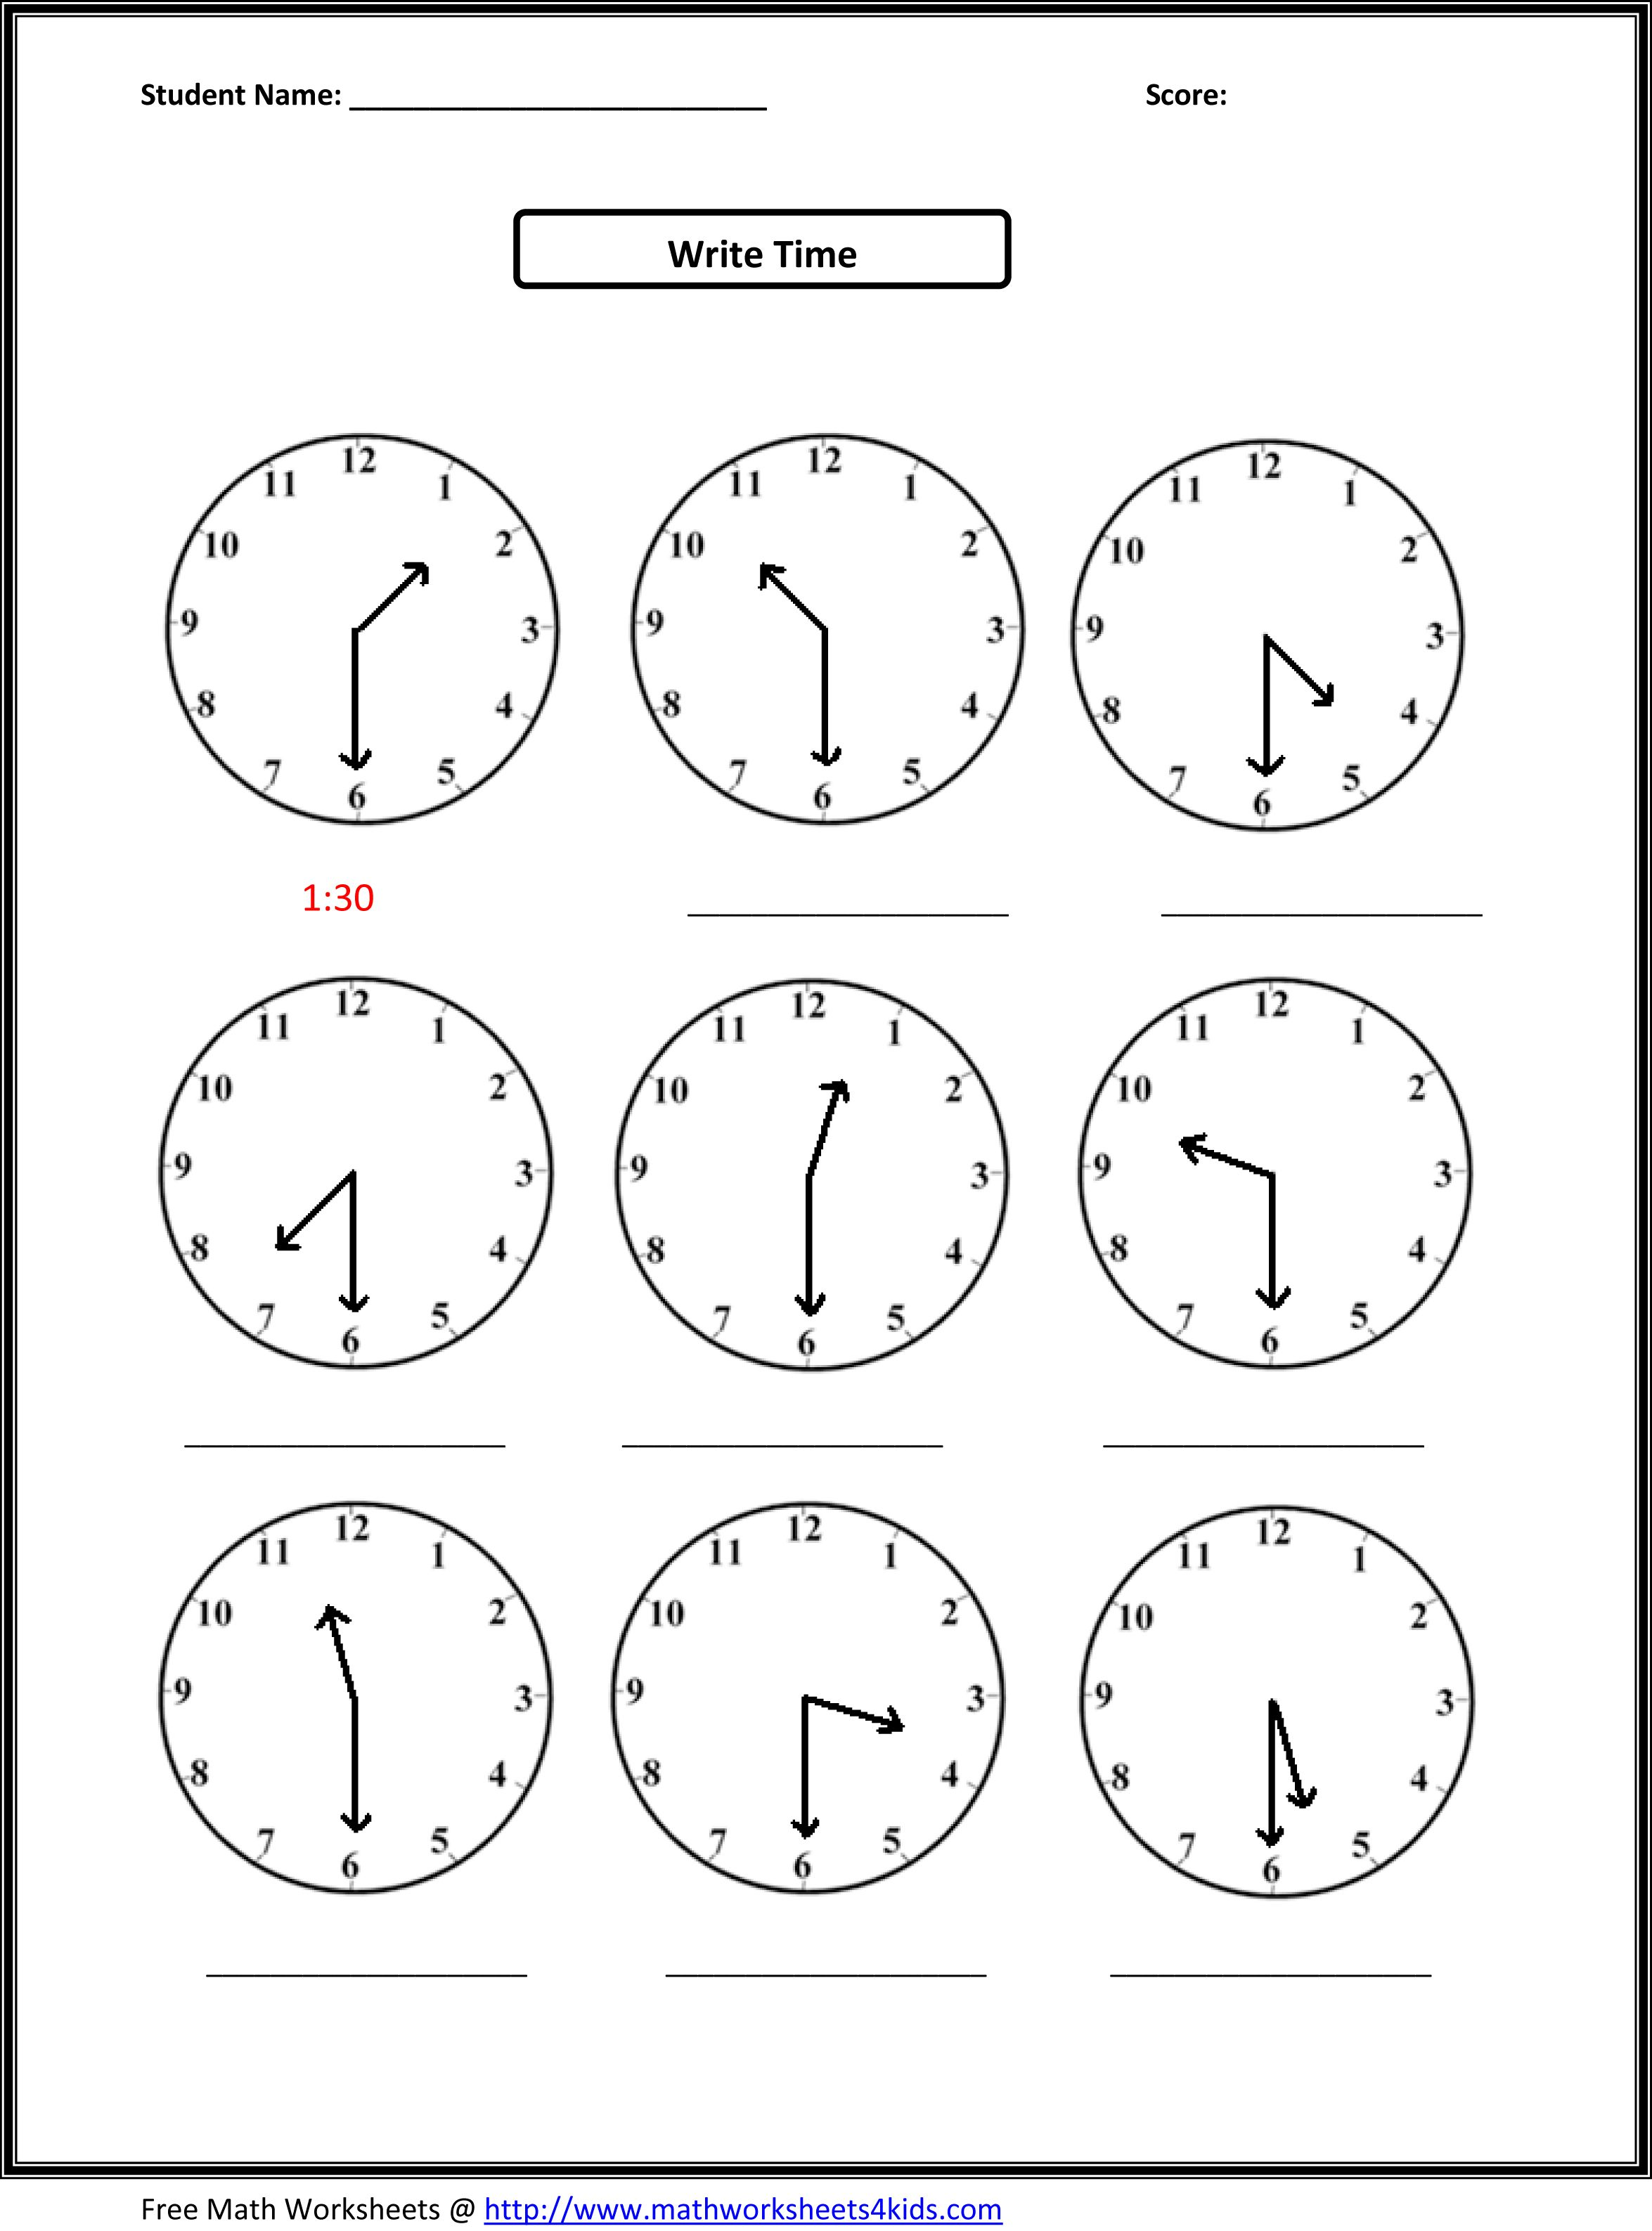 Proatmealus  Terrific Worksheet On Time For Grade   Reocurent With Exquisite Free Printable Telling Time Worksheets Nd Grade  Reocurent With Cool Map Activity Worksheets Also Money Worksheets For Preschoolers In Addition Chemistry Chemical Word Equations Worksheet Answers And Story Plot Worksheet As Well As Converting Units Of Length Worksheet Additionally Rhyming Words Worksheet For Kindergarten From Reocurentcom With Proatmealus  Exquisite Worksheet On Time For Grade   Reocurent With Cool Free Printable Telling Time Worksheets Nd Grade  Reocurent And Terrific Map Activity Worksheets Also Money Worksheets For Preschoolers In Addition Chemistry Chemical Word Equations Worksheet Answers From Reocurentcom